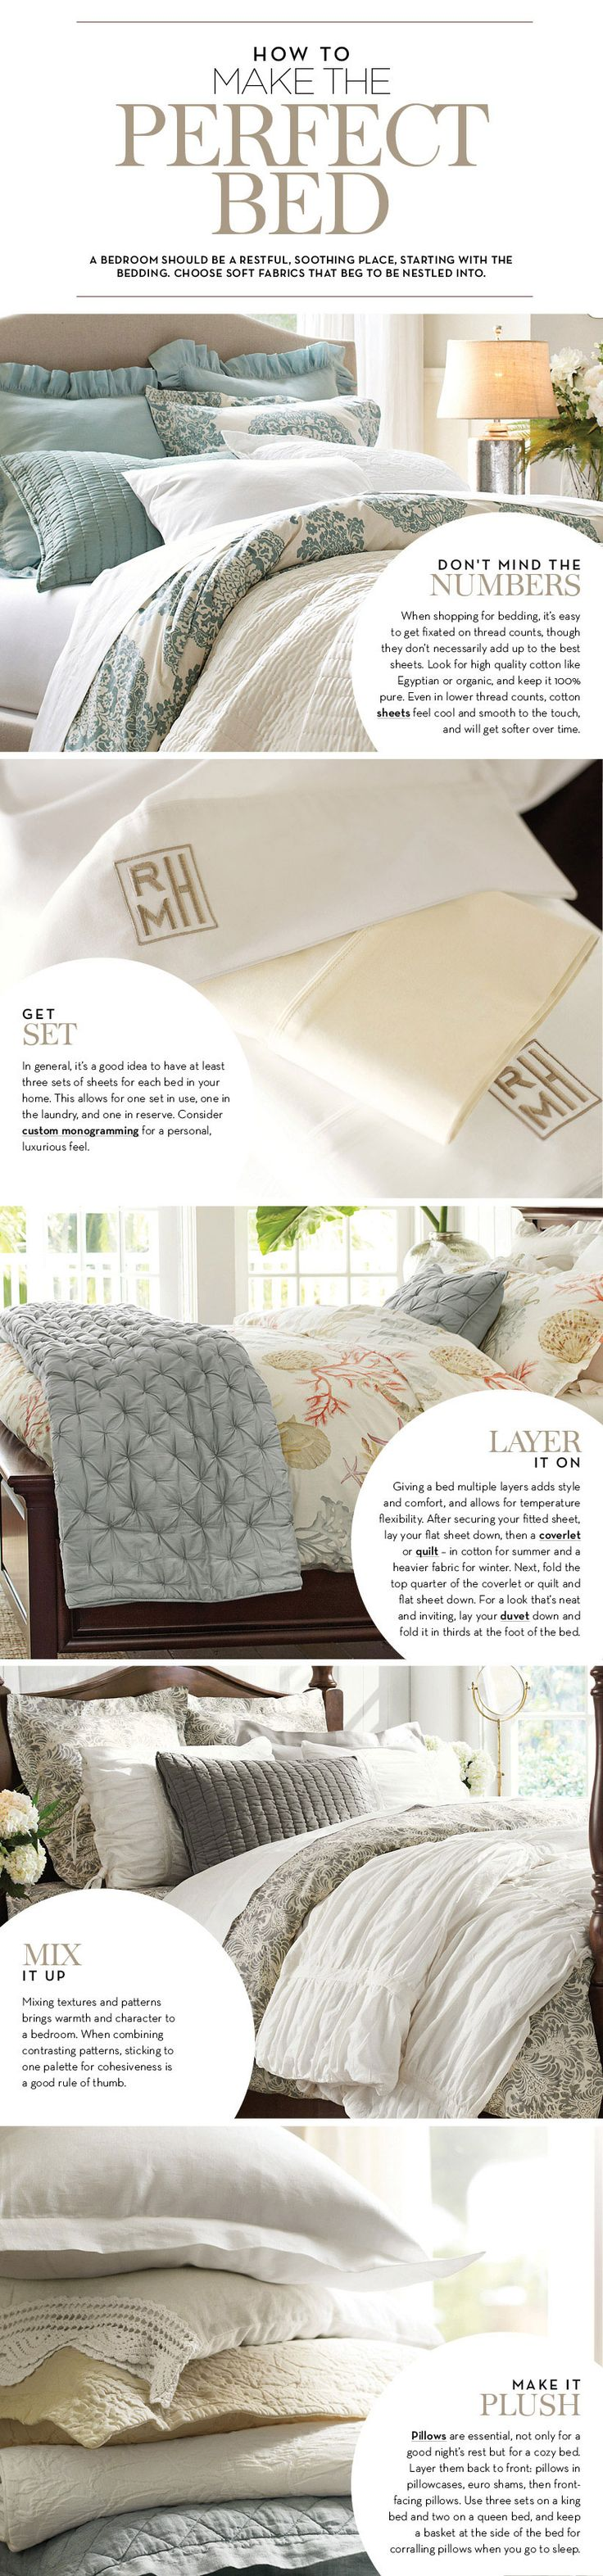 Best 25+ How to make bed ideas on Pinterest | Pottery barn bed ...